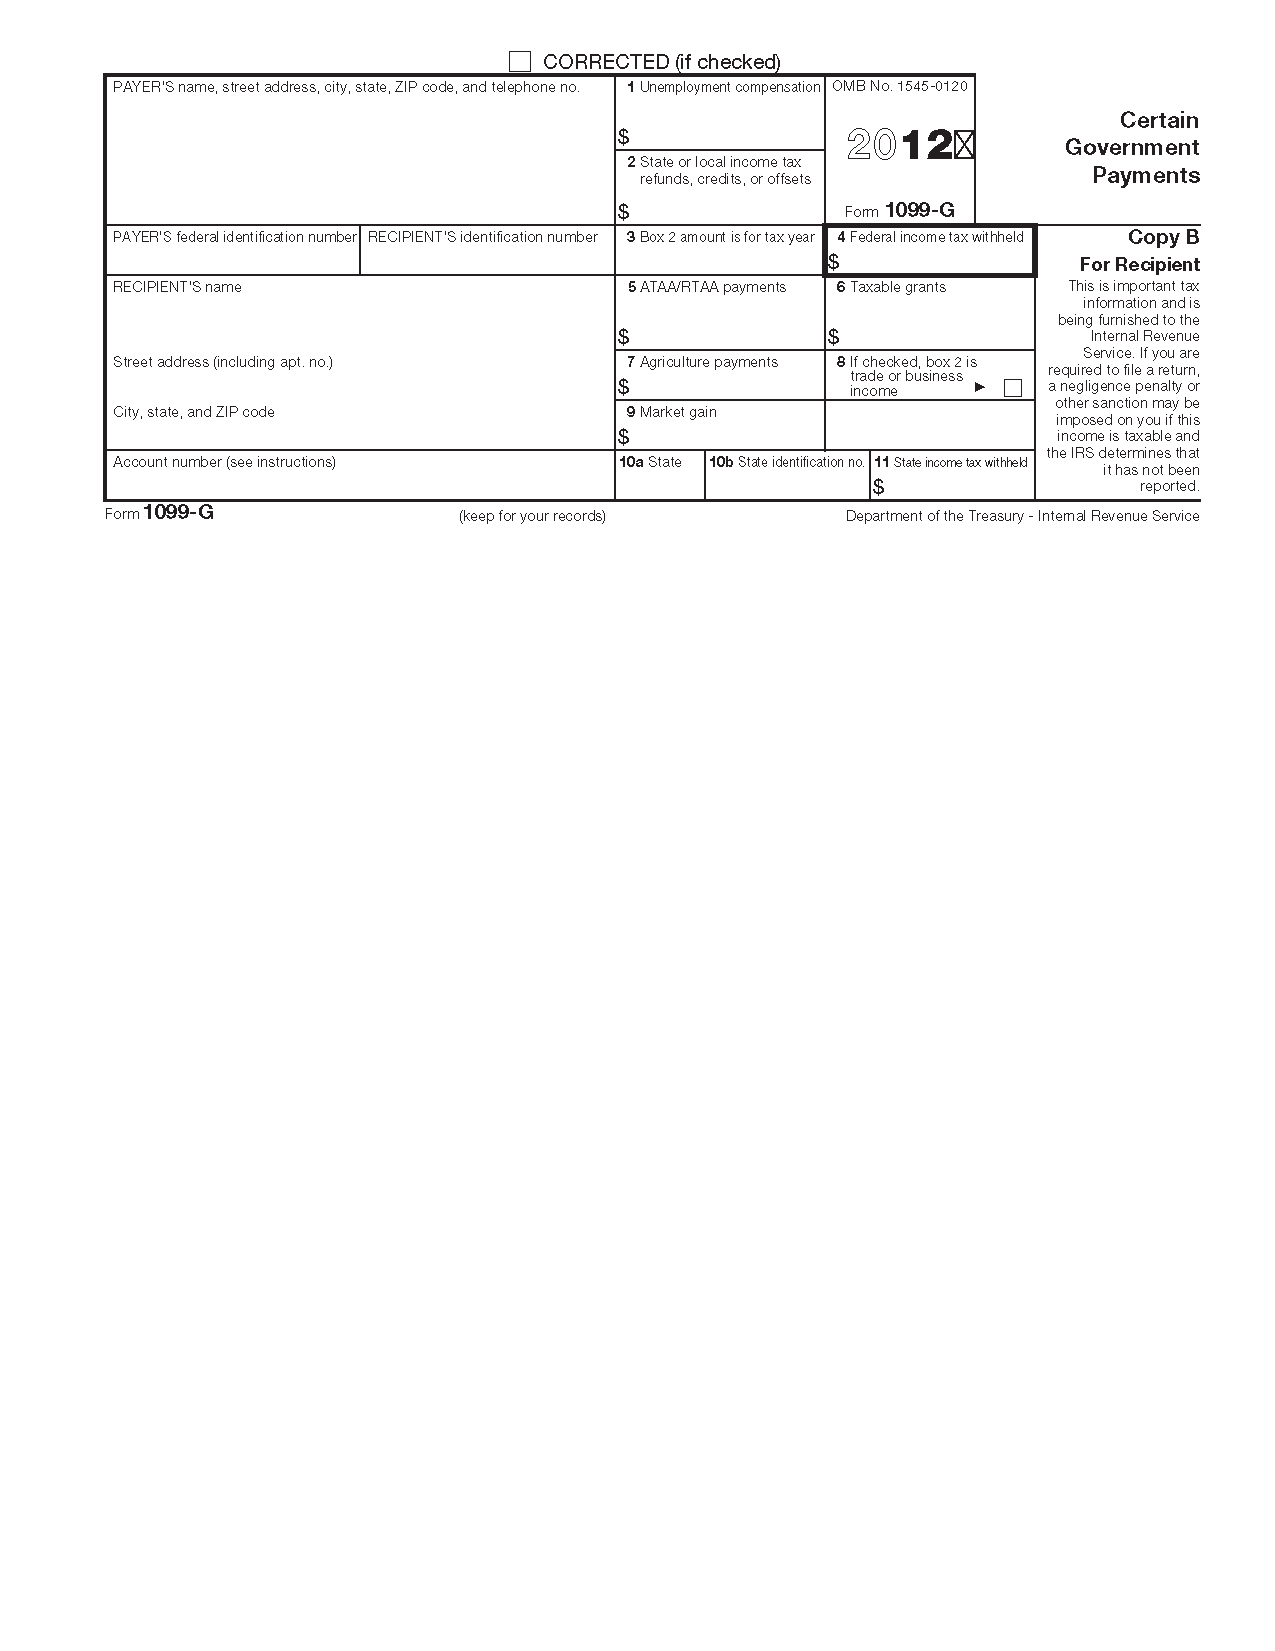 Form G Certain Government Payments Info Copy Only